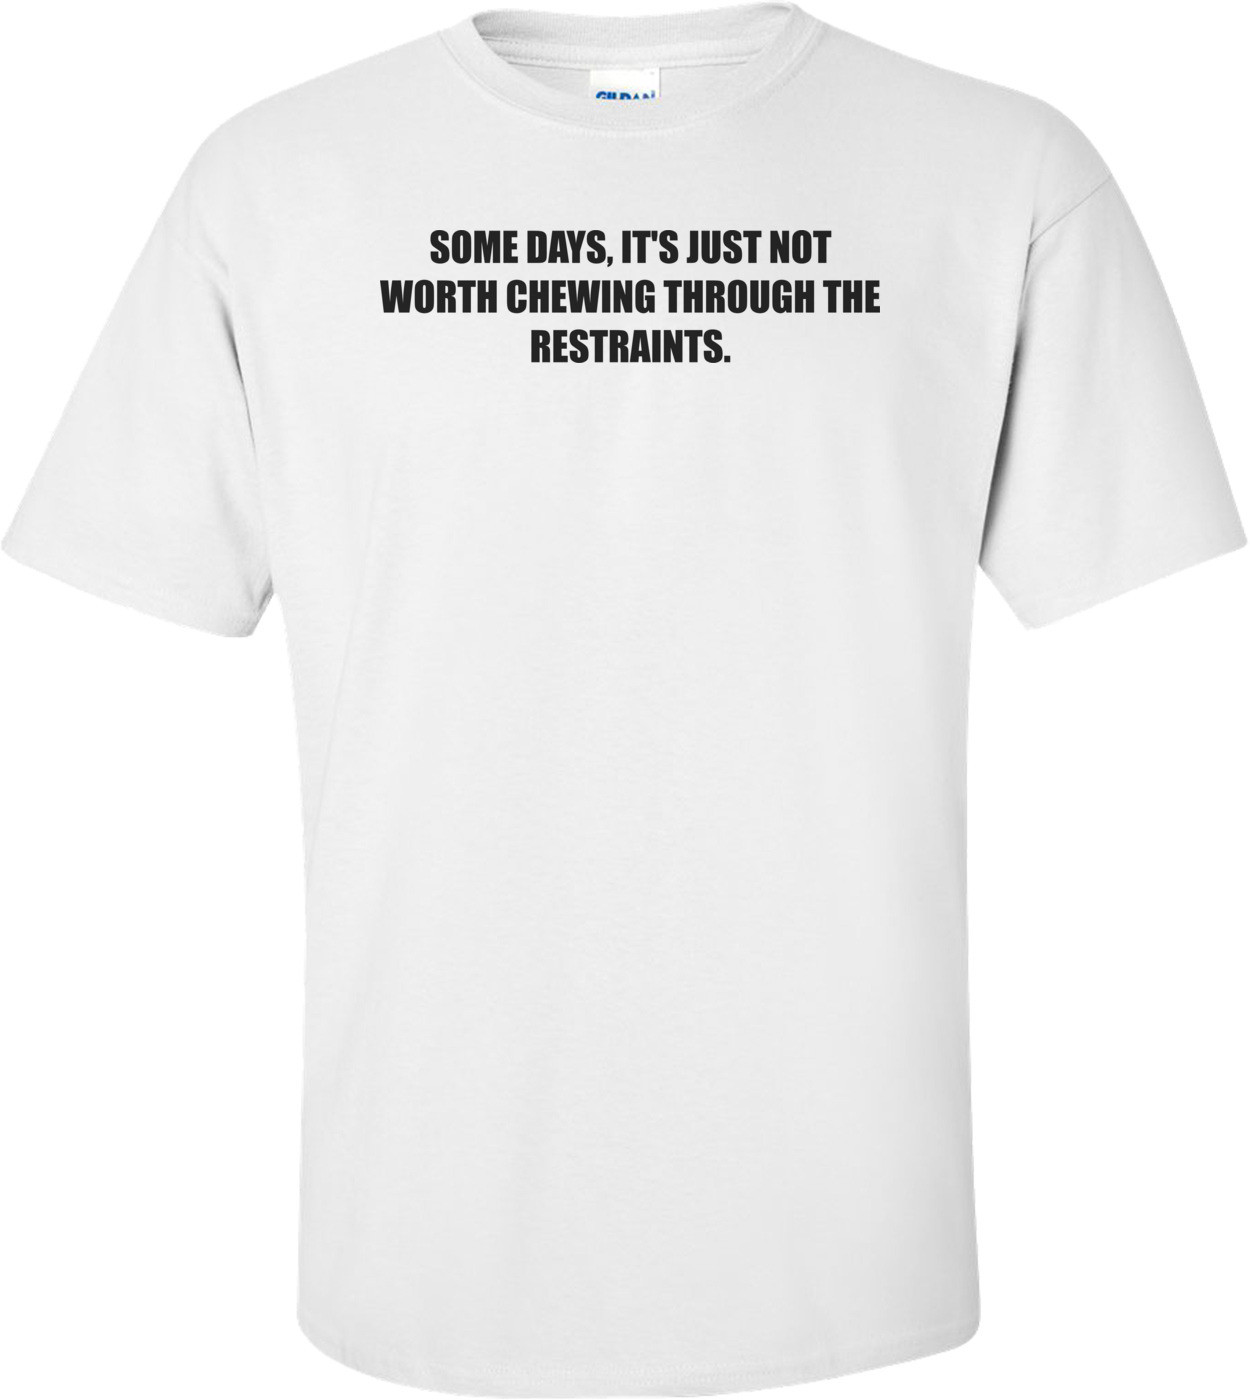 SOME DAYS, IT'S JUST NOT WORTH CHEWING THROUGH THE RESTRAINTS. Shirt